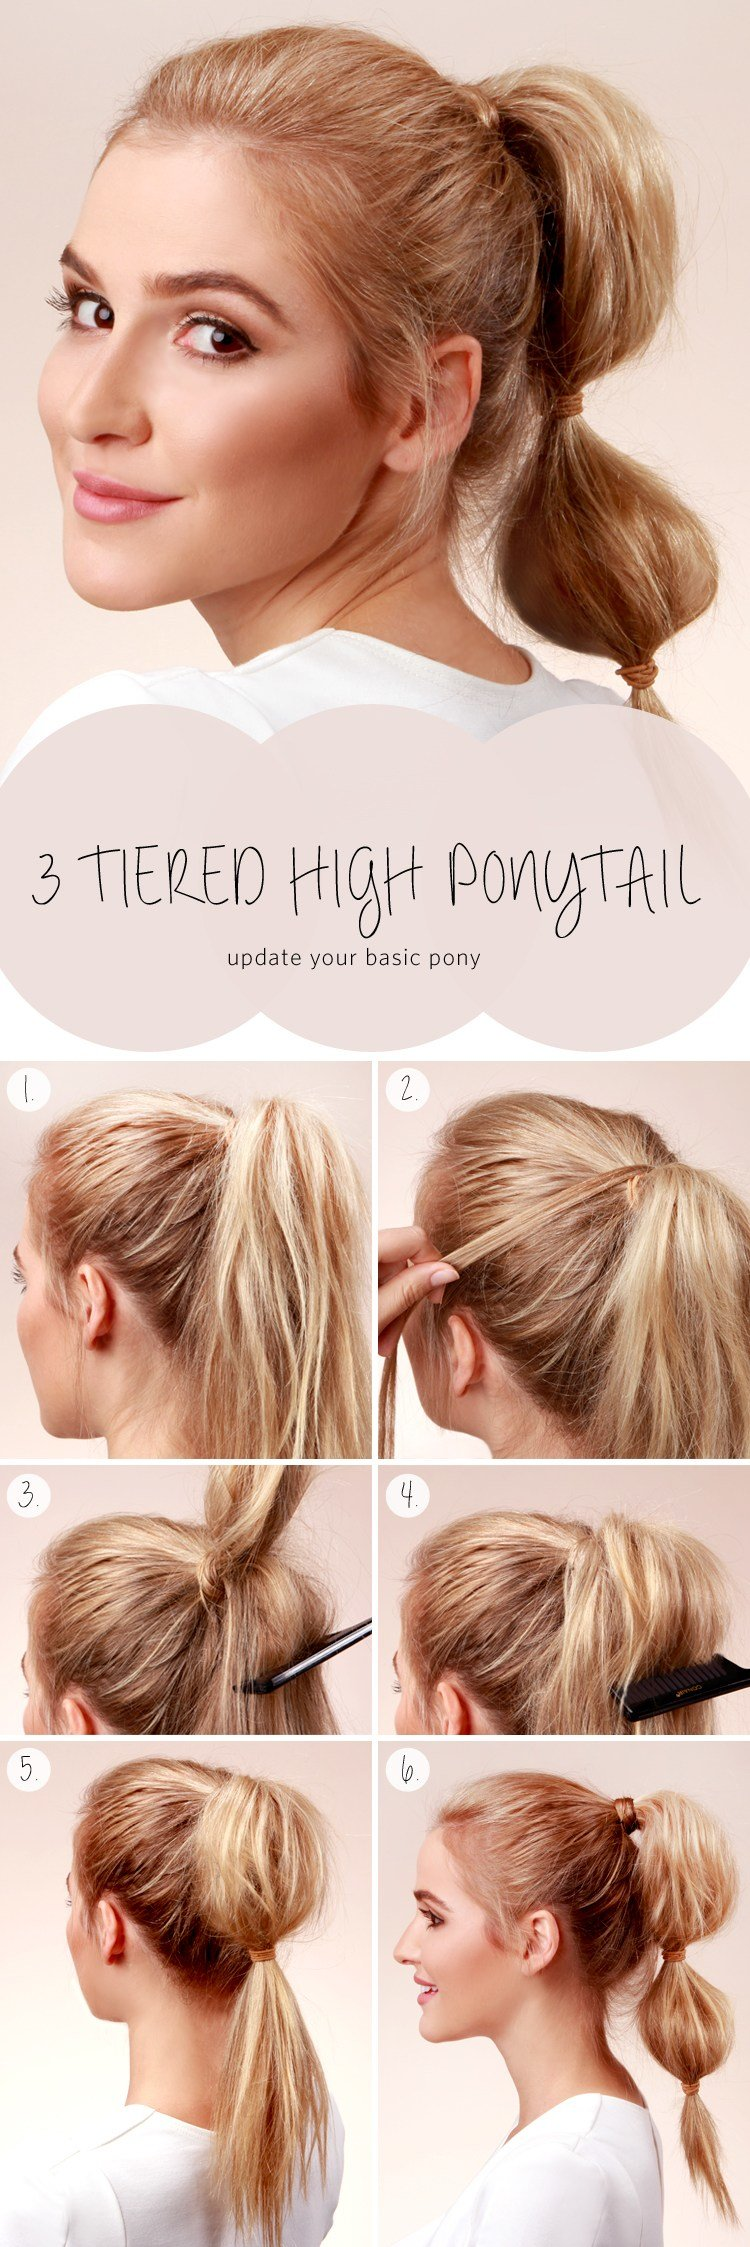 The Best Top 10 Hairstyle Tutorials For Summer Pretty Designs Pictures